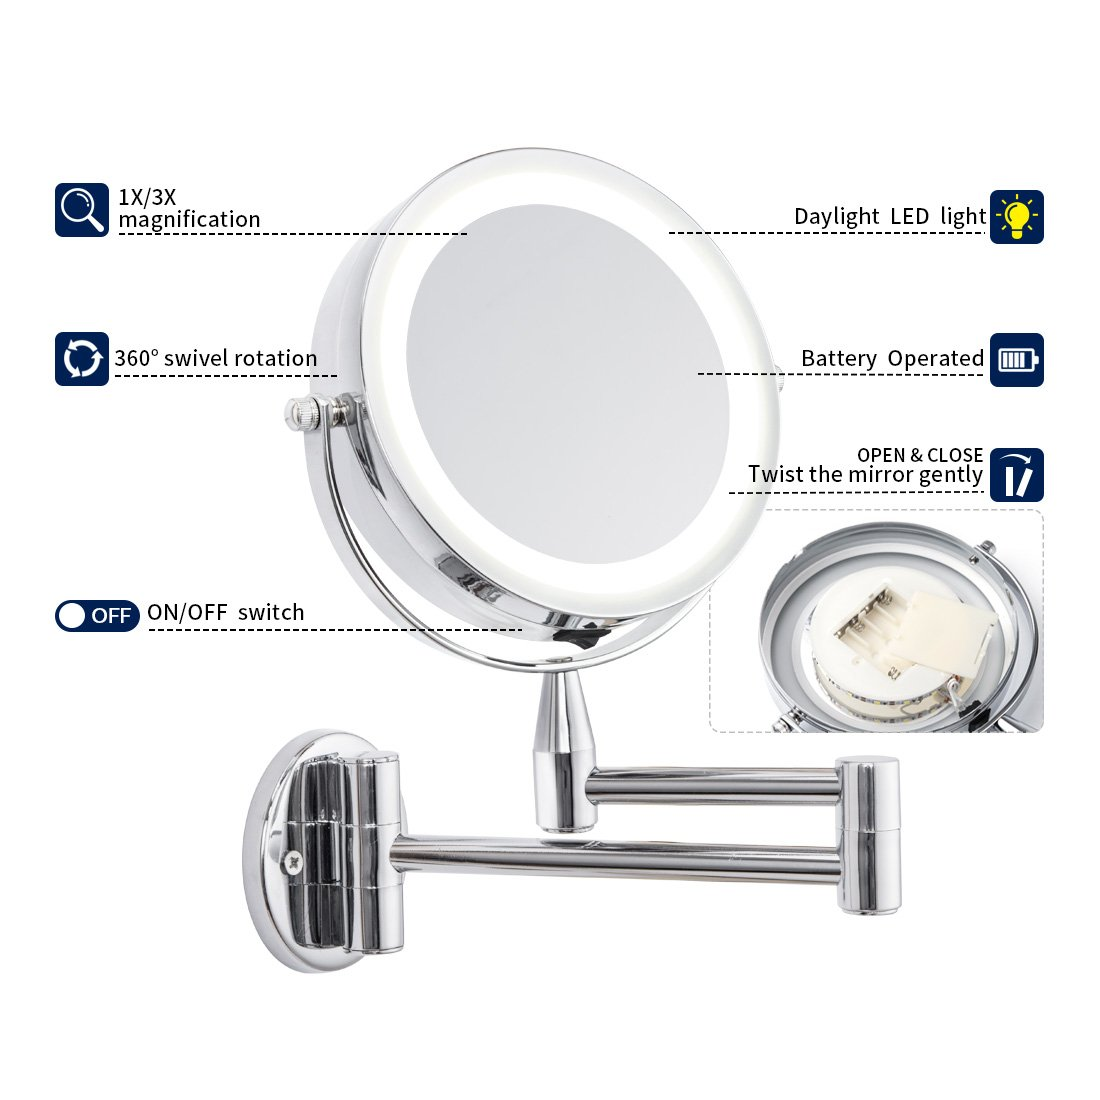 1X/3X Magnification Led Cosmetic Mirror Wall Mounted, Double Side, Adjustable, Rotating Function, Lighted Vanity Mirror, Powered by 4 x AAA Batteries (not Included) by FIRMLOC (Image #4)